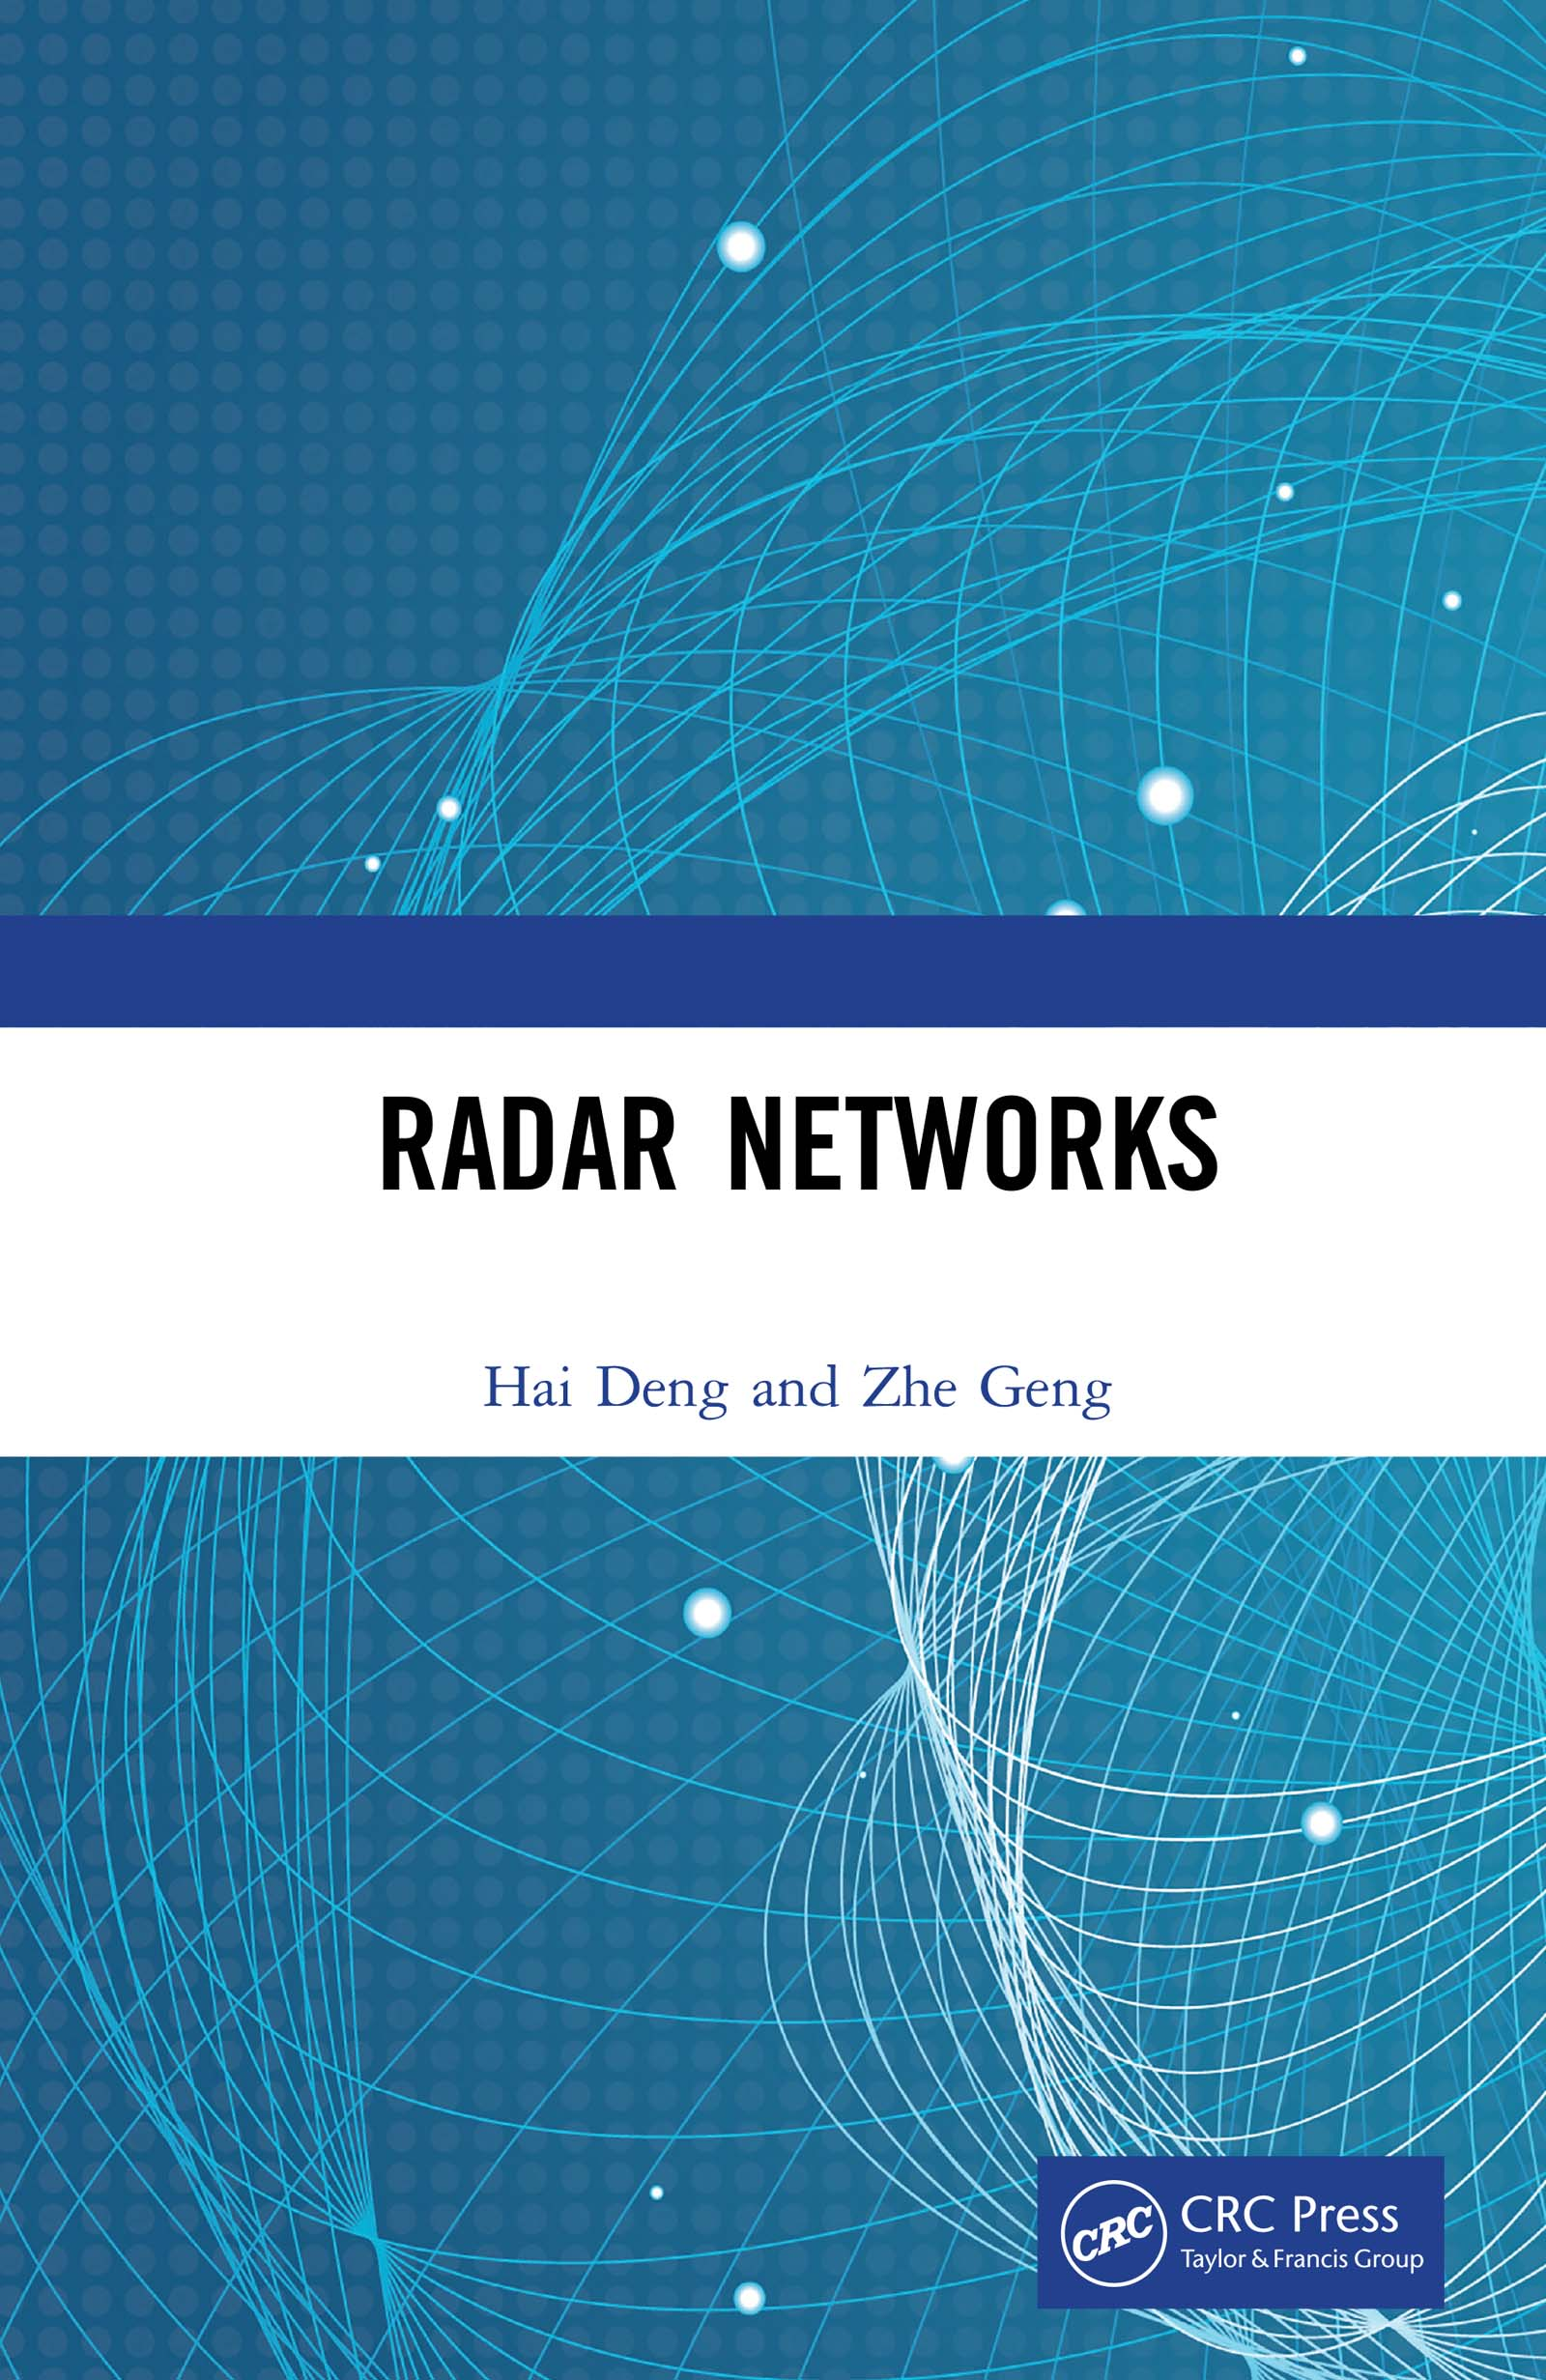 Space-Time Adaptive                         Processing (STAP) for Radar and Radar Networks